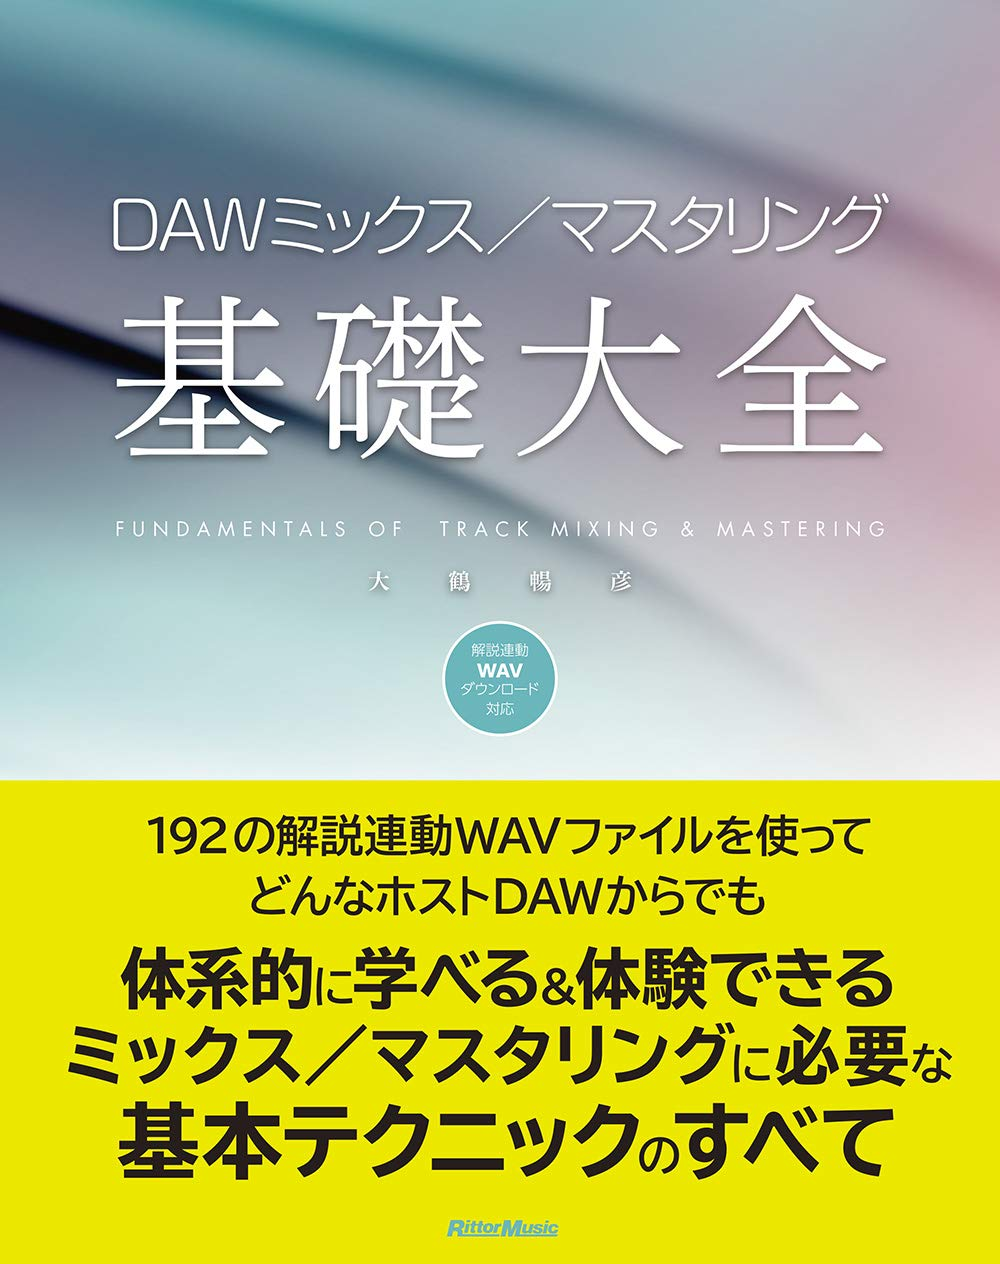 daw-mix-mastering-basic